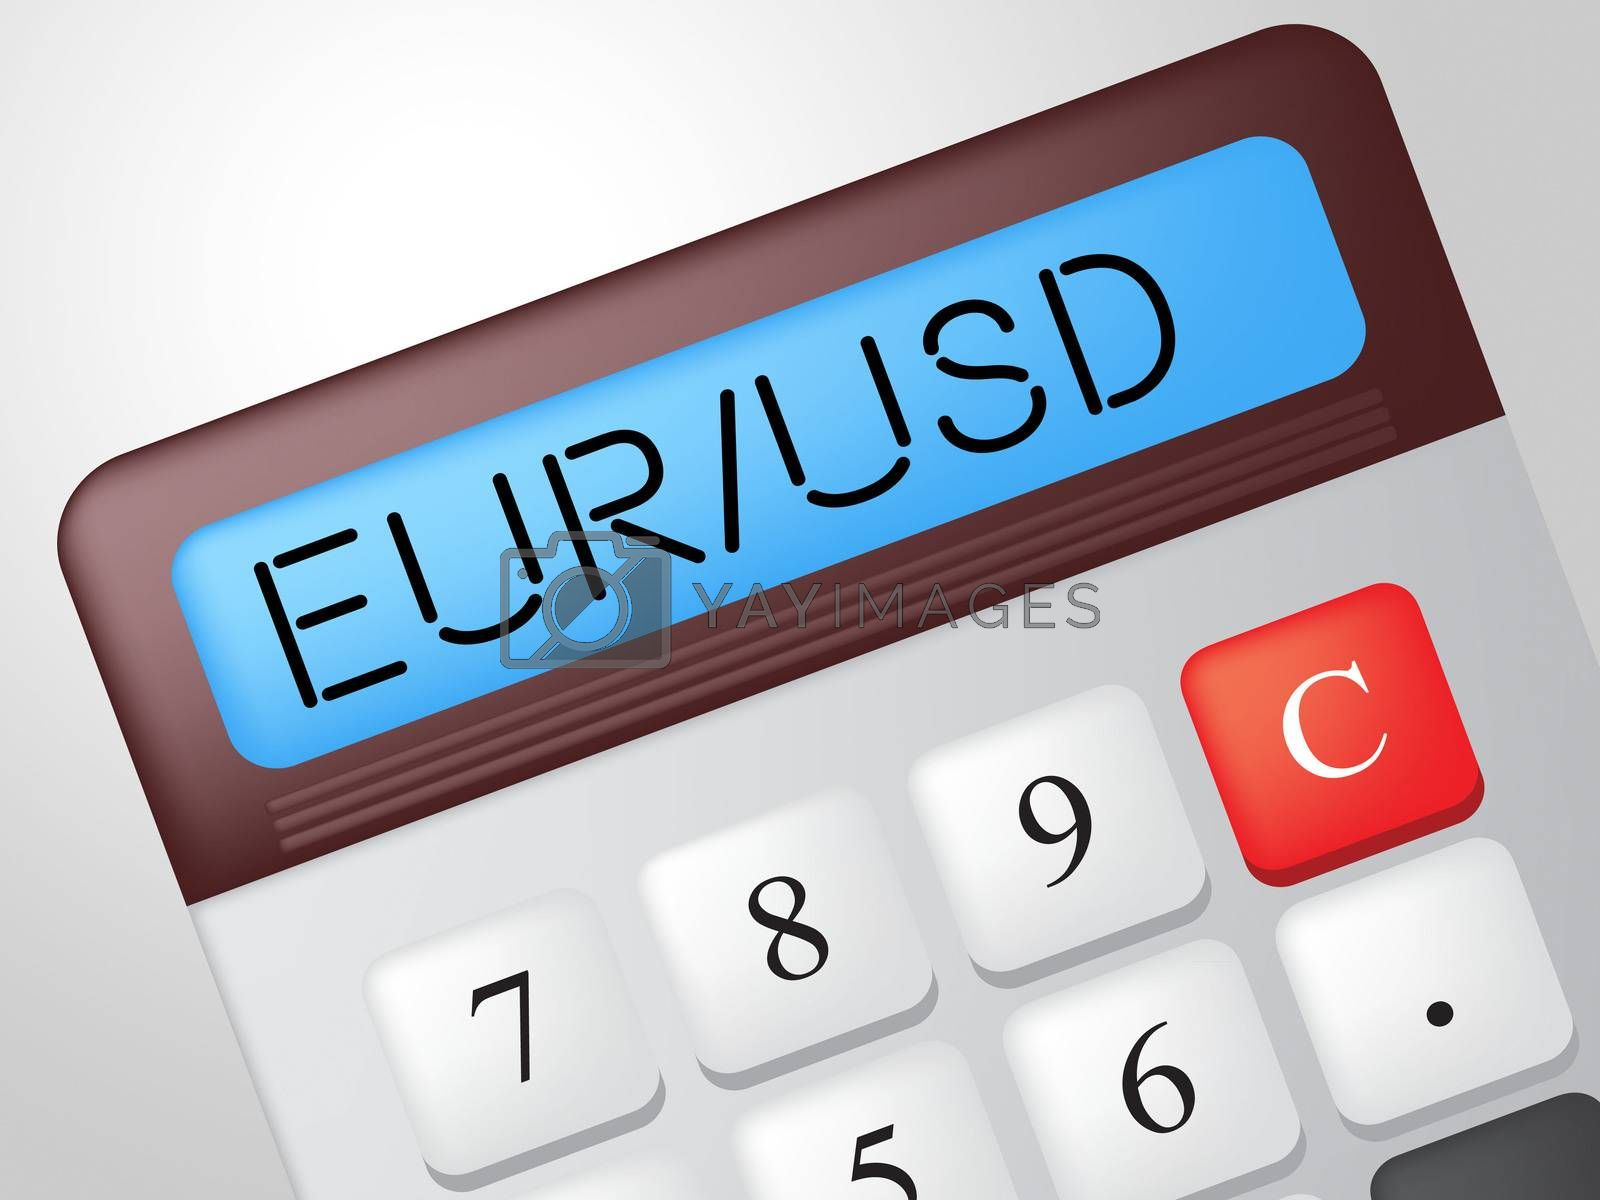 Eur Usd Calculator Indicates Exchange Rate And American by stuartmiles